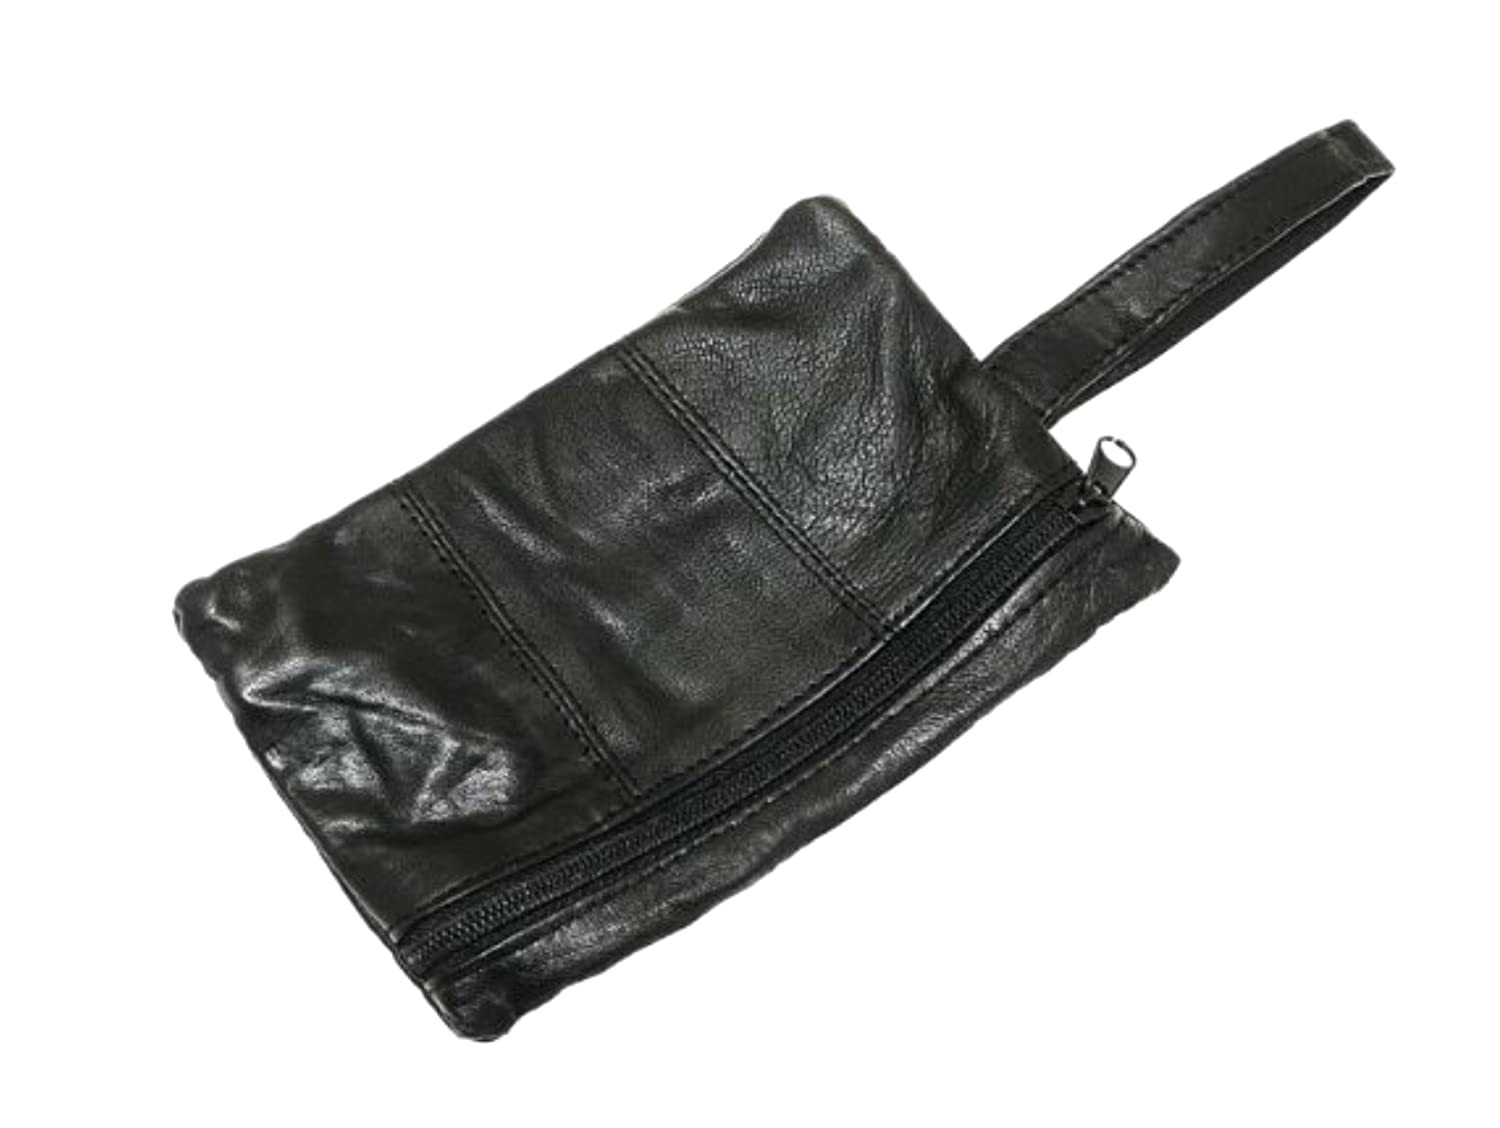 e2753afe1ff9 Black Leather Safety Money Belt (Folds Inside Trousers) Travel Accessory  Gift - A: Amazon.co.uk: Luggage